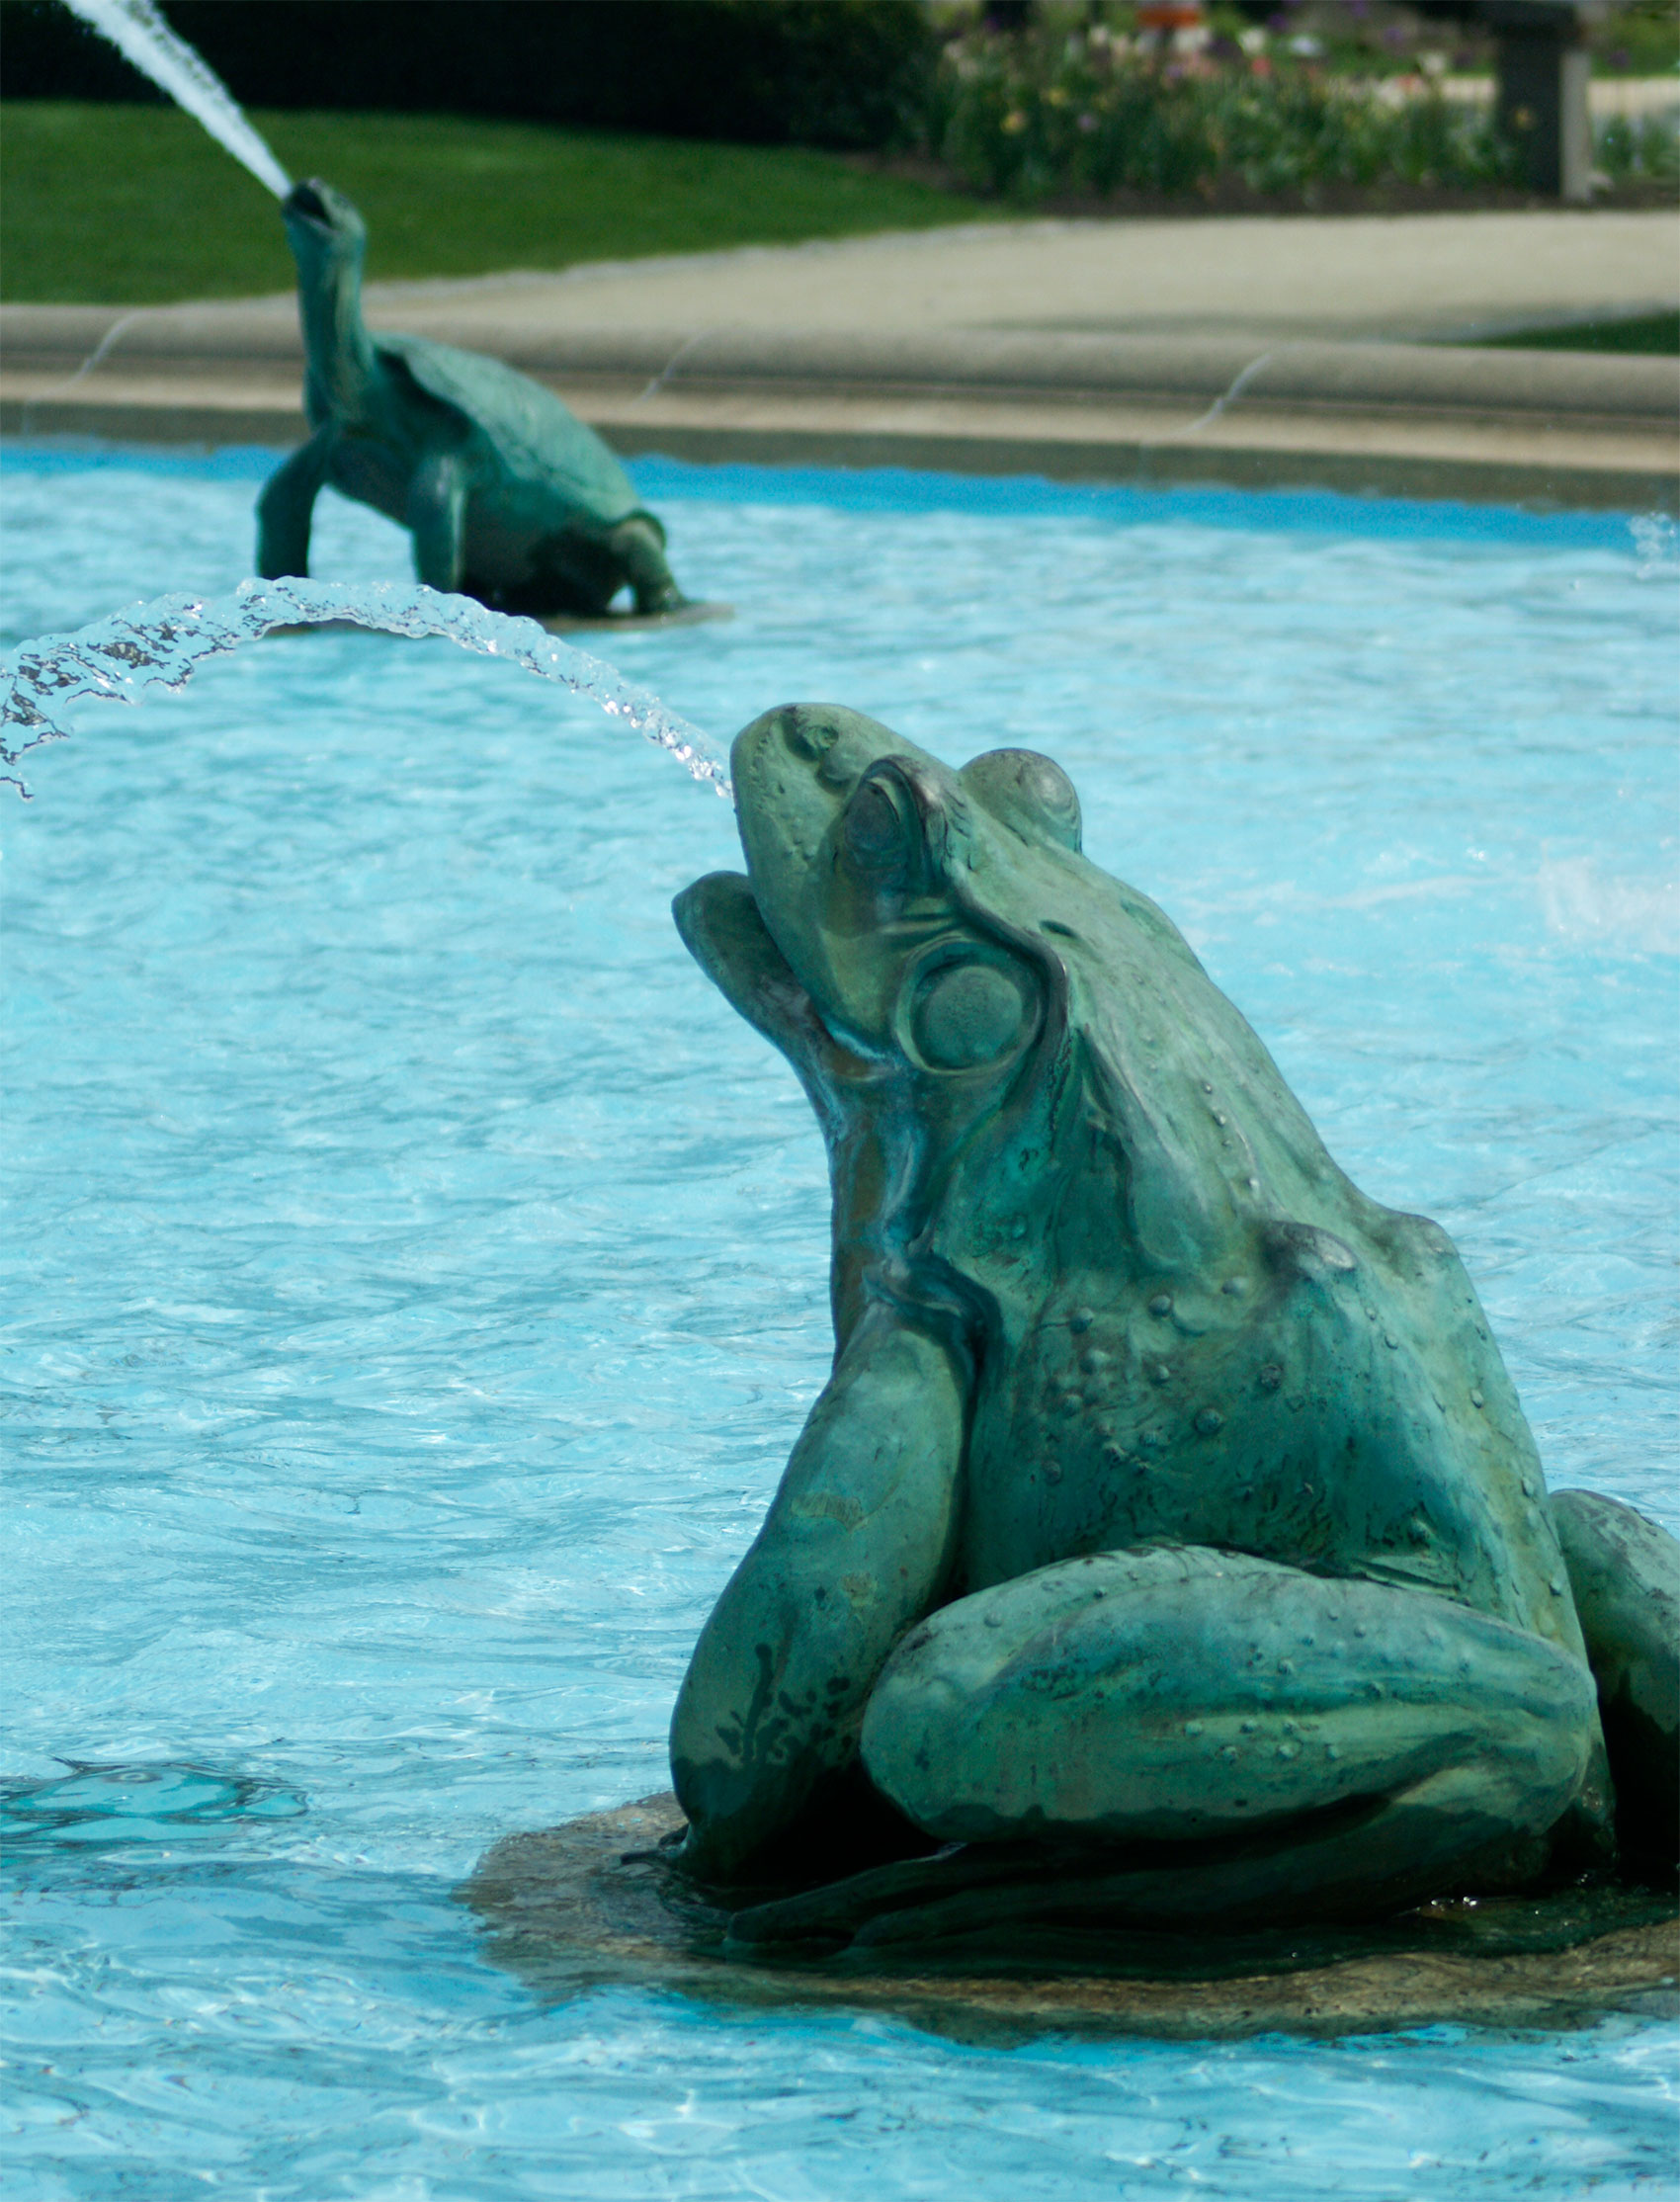 Frog and turtle sculptures of the Swann Memorial Fountain